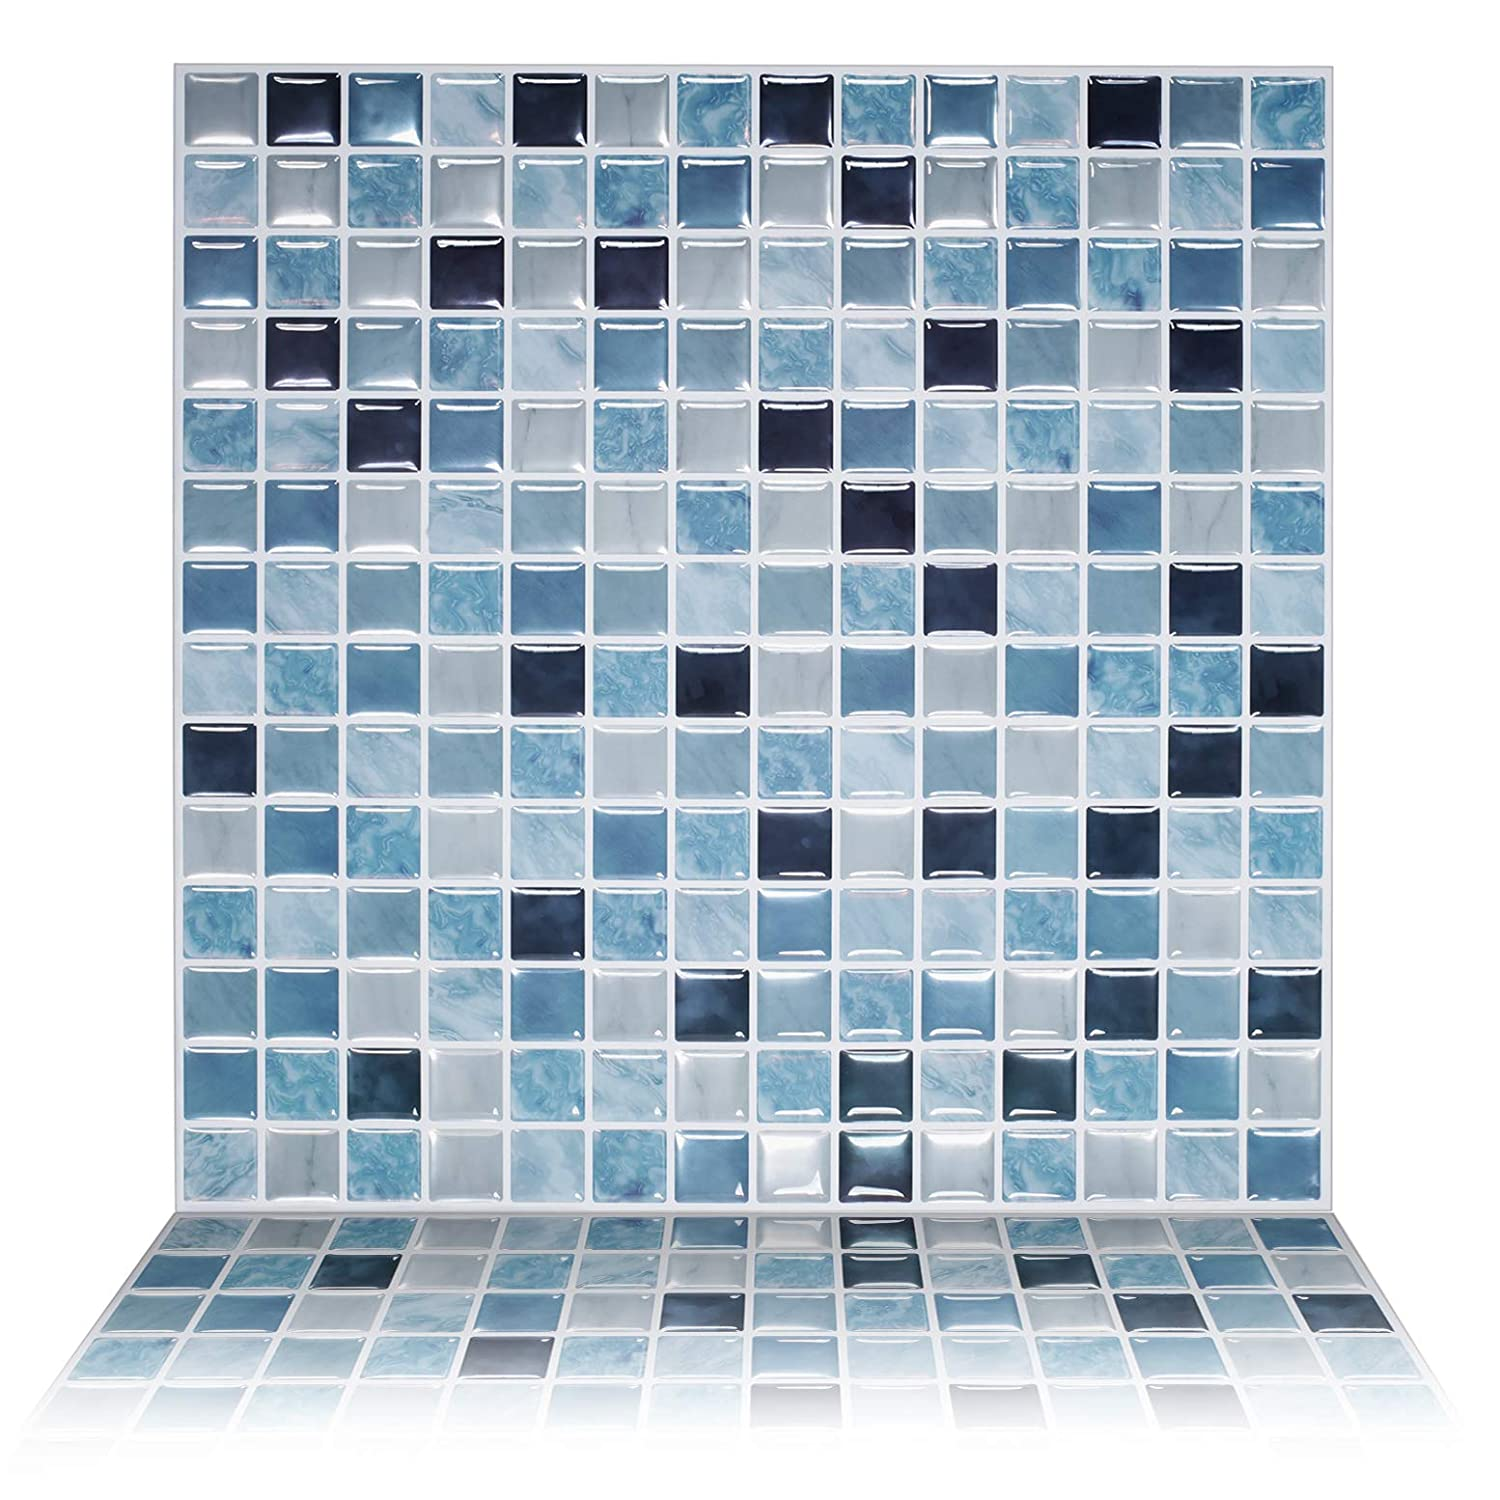 """Tic Tac Tiles 10-Sheet 12"""" x 12"""" Peel and Stick Self Adhesive Removable Stick On Kitchen Backsplash Bathroom 3D Wall Sticker Wallpaper Tiles in Square Sea Breeze"""